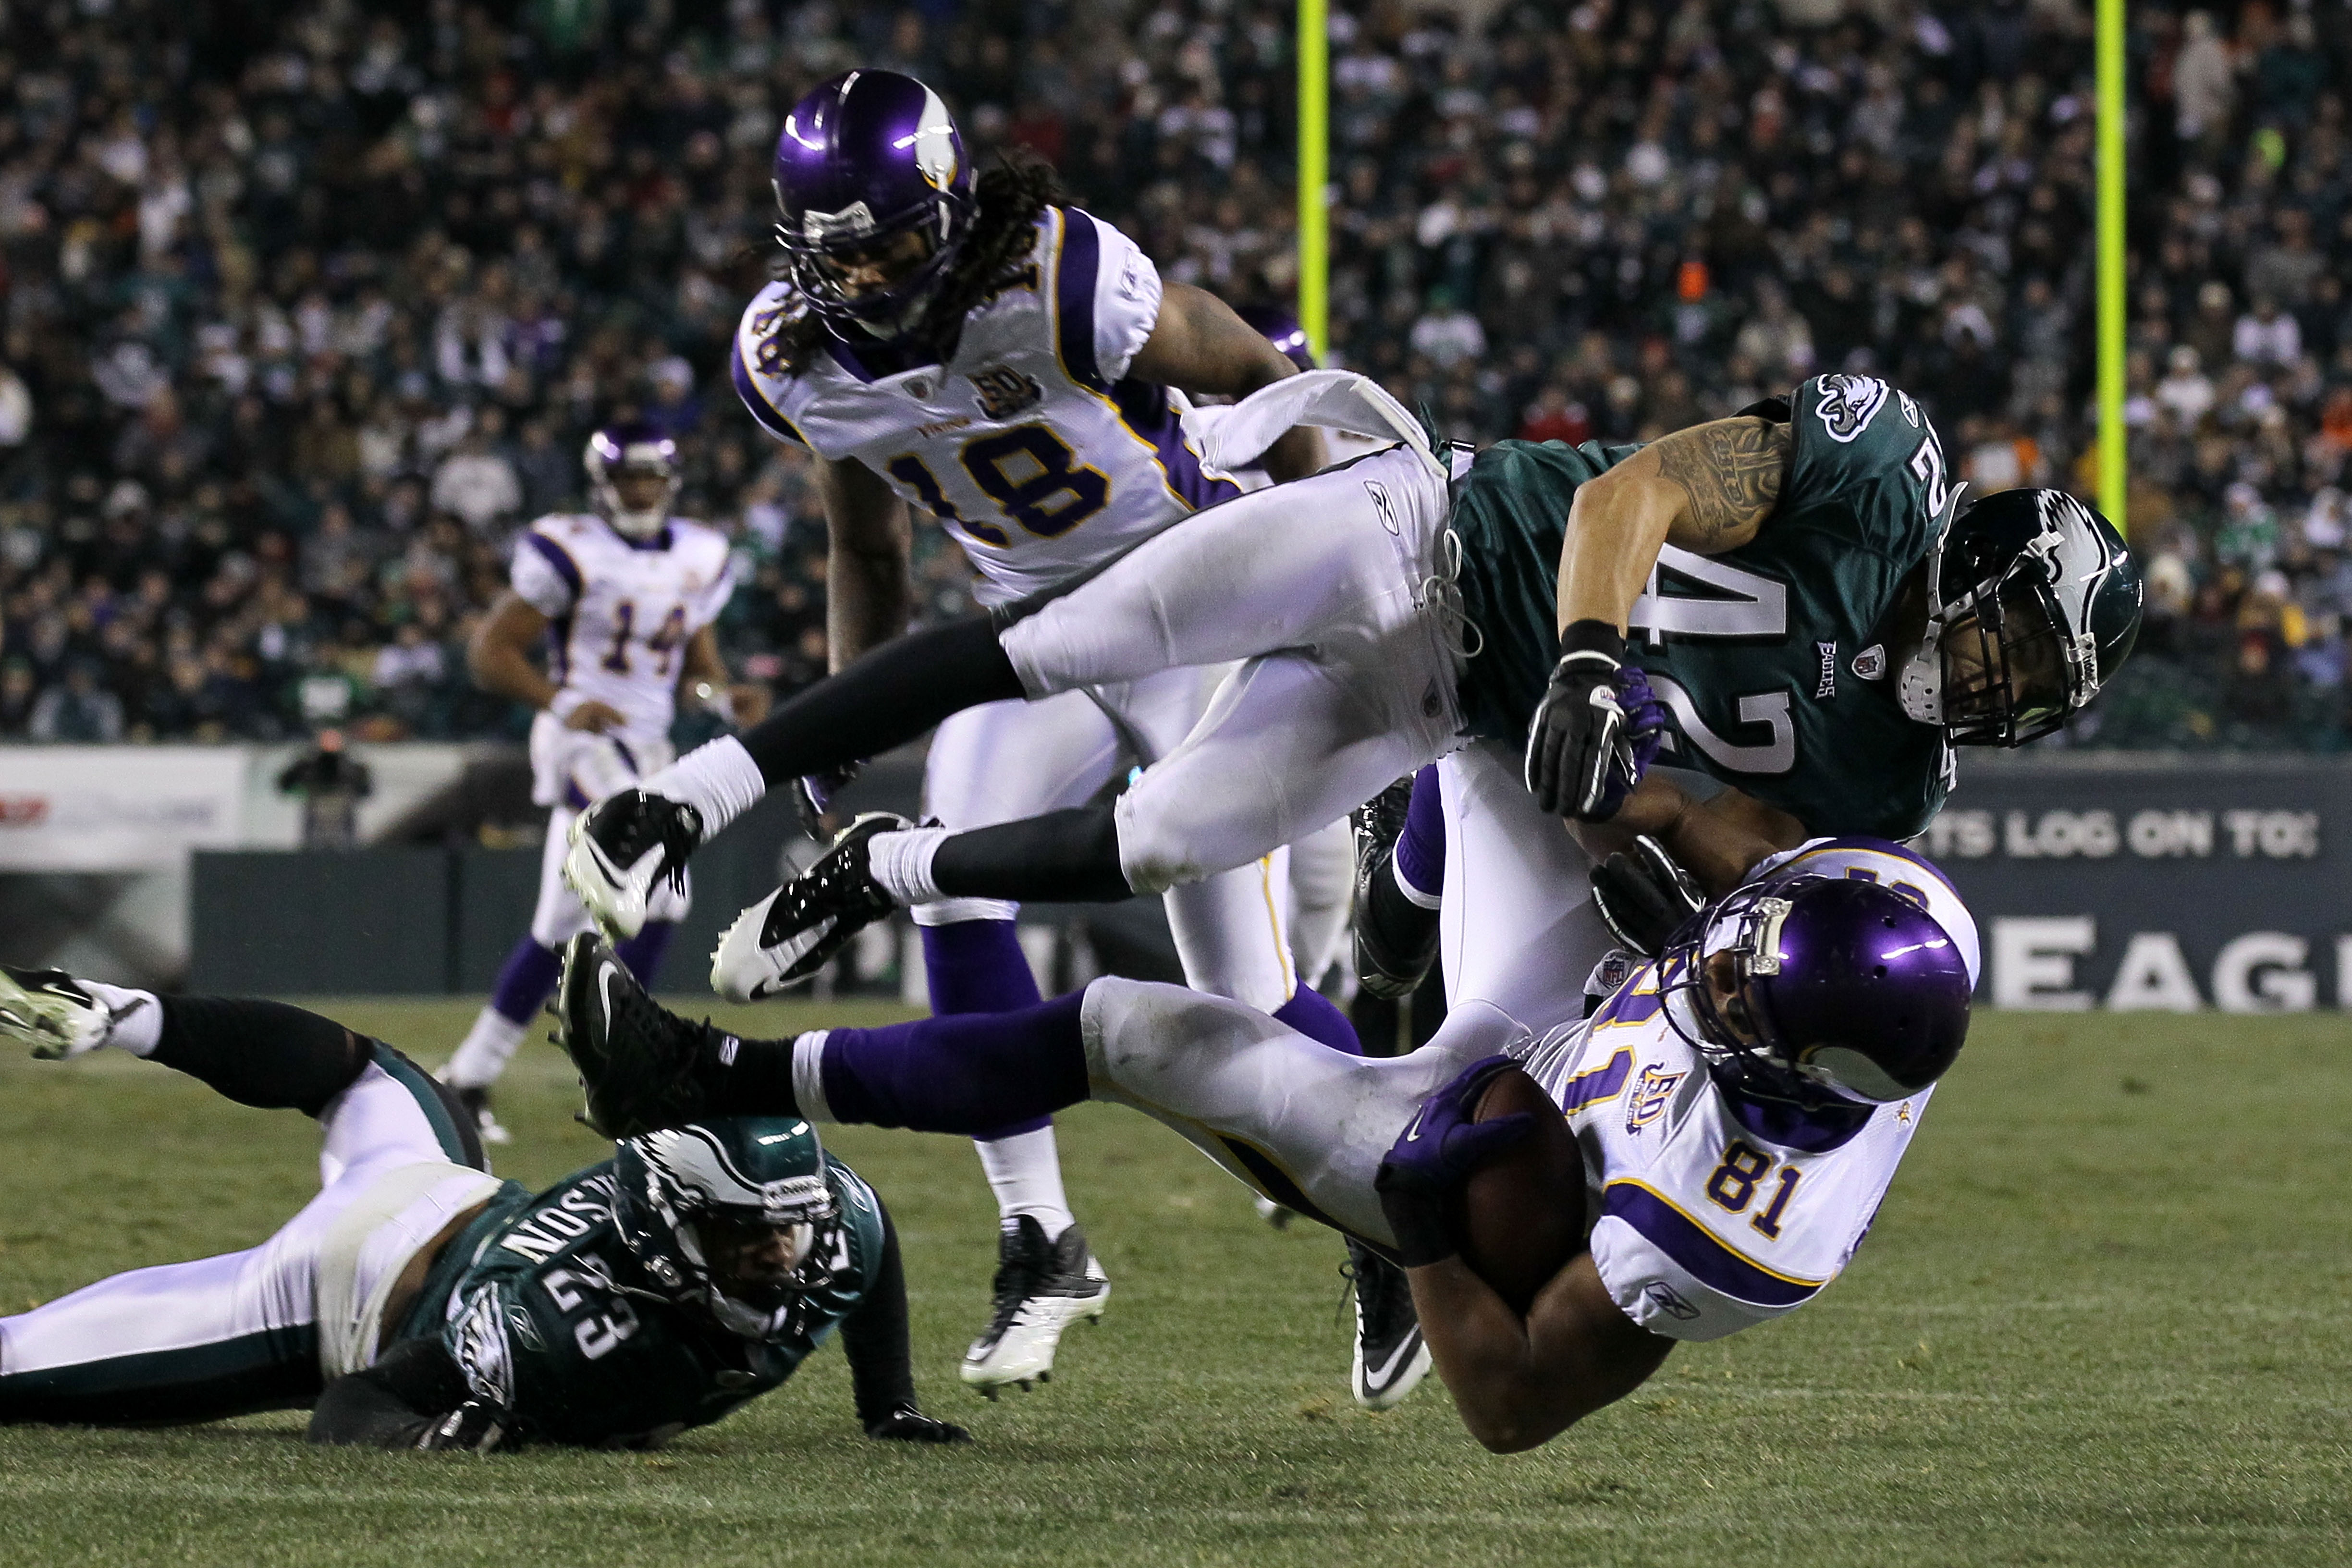 PHILADELPHIA, PA - DECEMBER 26:  Kurt Coleman #42 of the Philadelphia Eagles tackles Visanthe Shiancoe #81 of the Minnesota Vikings at Lincoln Financial Field on December 26, 2010 in Philadelphia, Pennsylvania.  (Photo by Jim McIsaac/Getty Images)